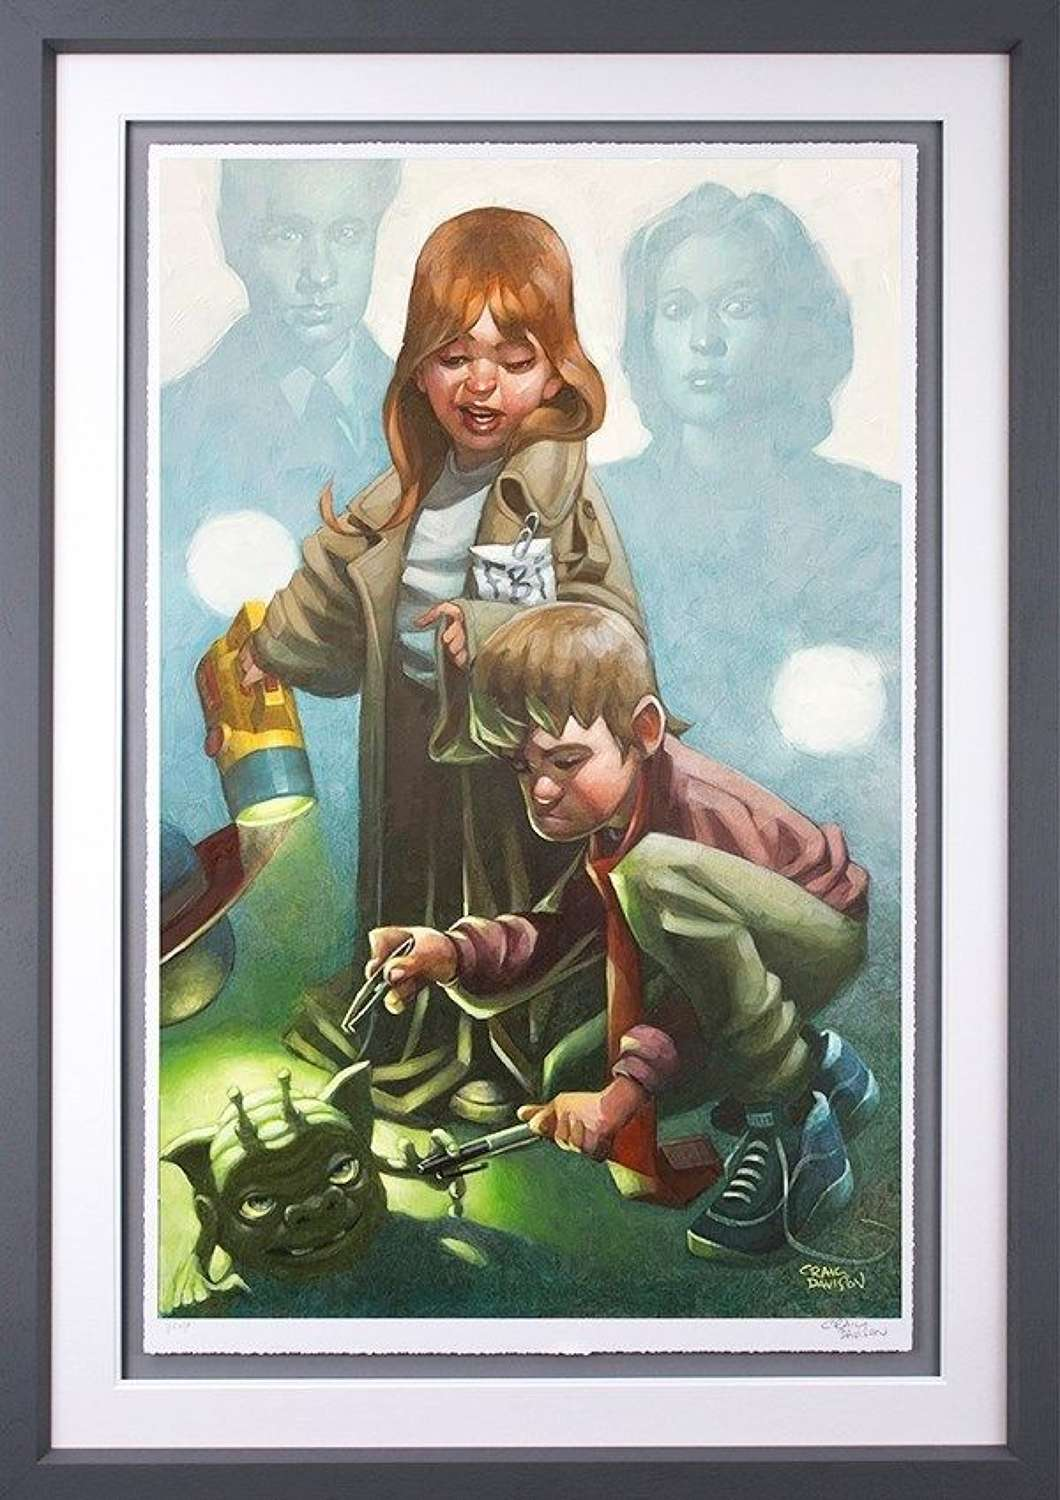 X-Factor - Framed Art Print by Craig Davison